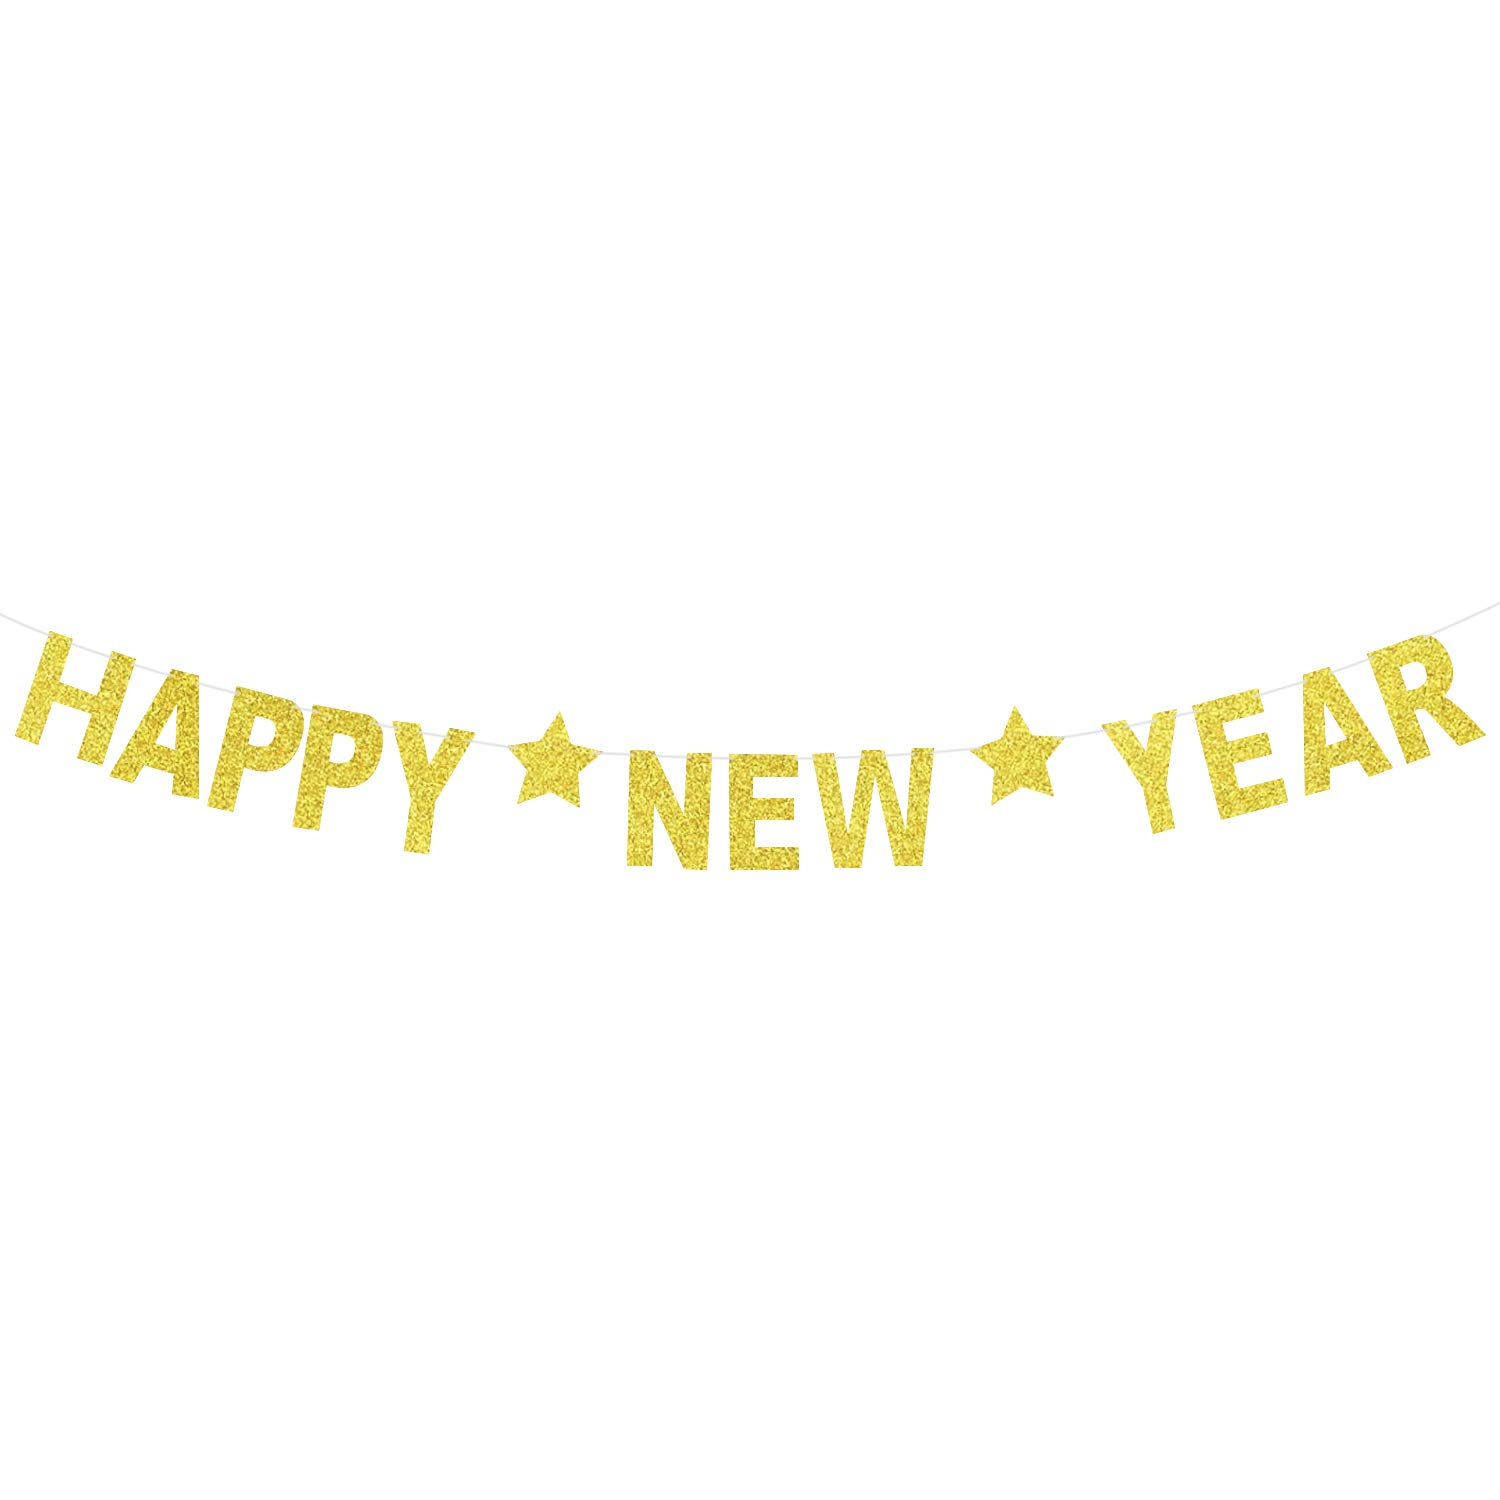 New Years Eve Party Supplies 2019 Happy New Year Glitter Banner Real Glitter Star NYE Banner Gold Paper Glitter Hanging Banner Sign New Year Decorations No DIY Required KatchOn NYE Decorations 2019